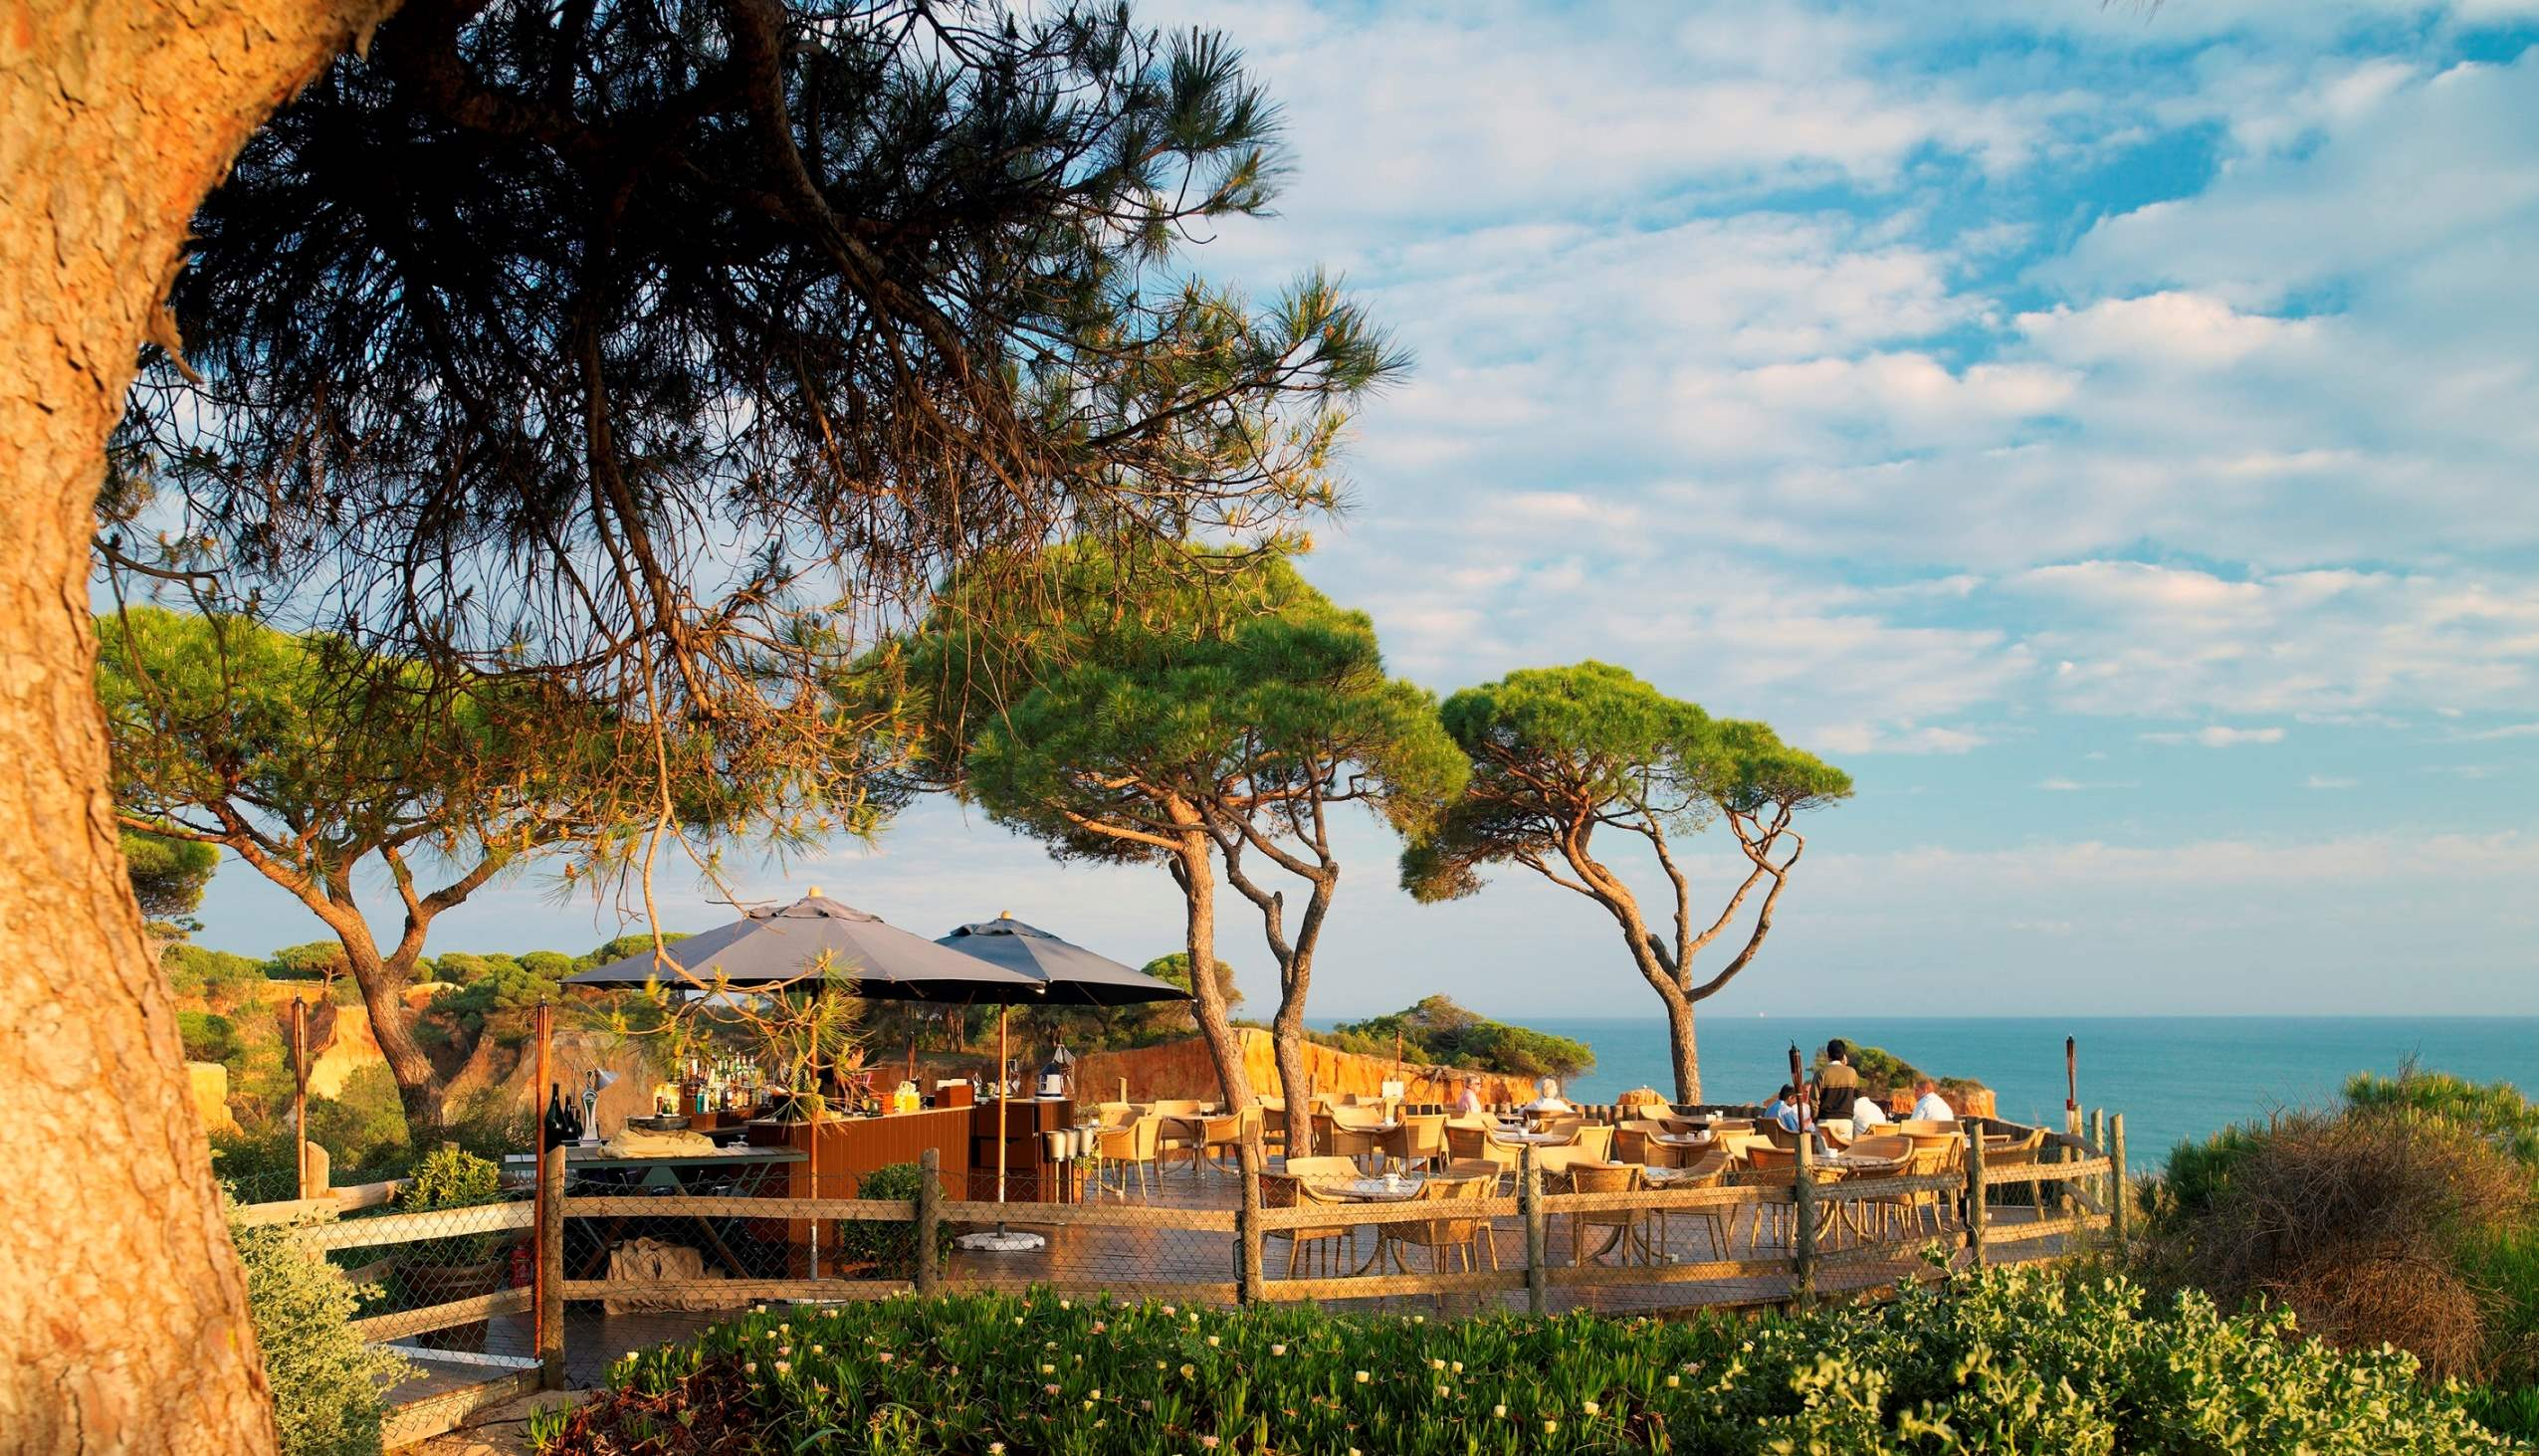 Pine Cliffs Gardens, Two Bedroom Suite, S/C Basis, 2 bedroom apartment in Pine Cliffs Resort, Algarve Photo #26